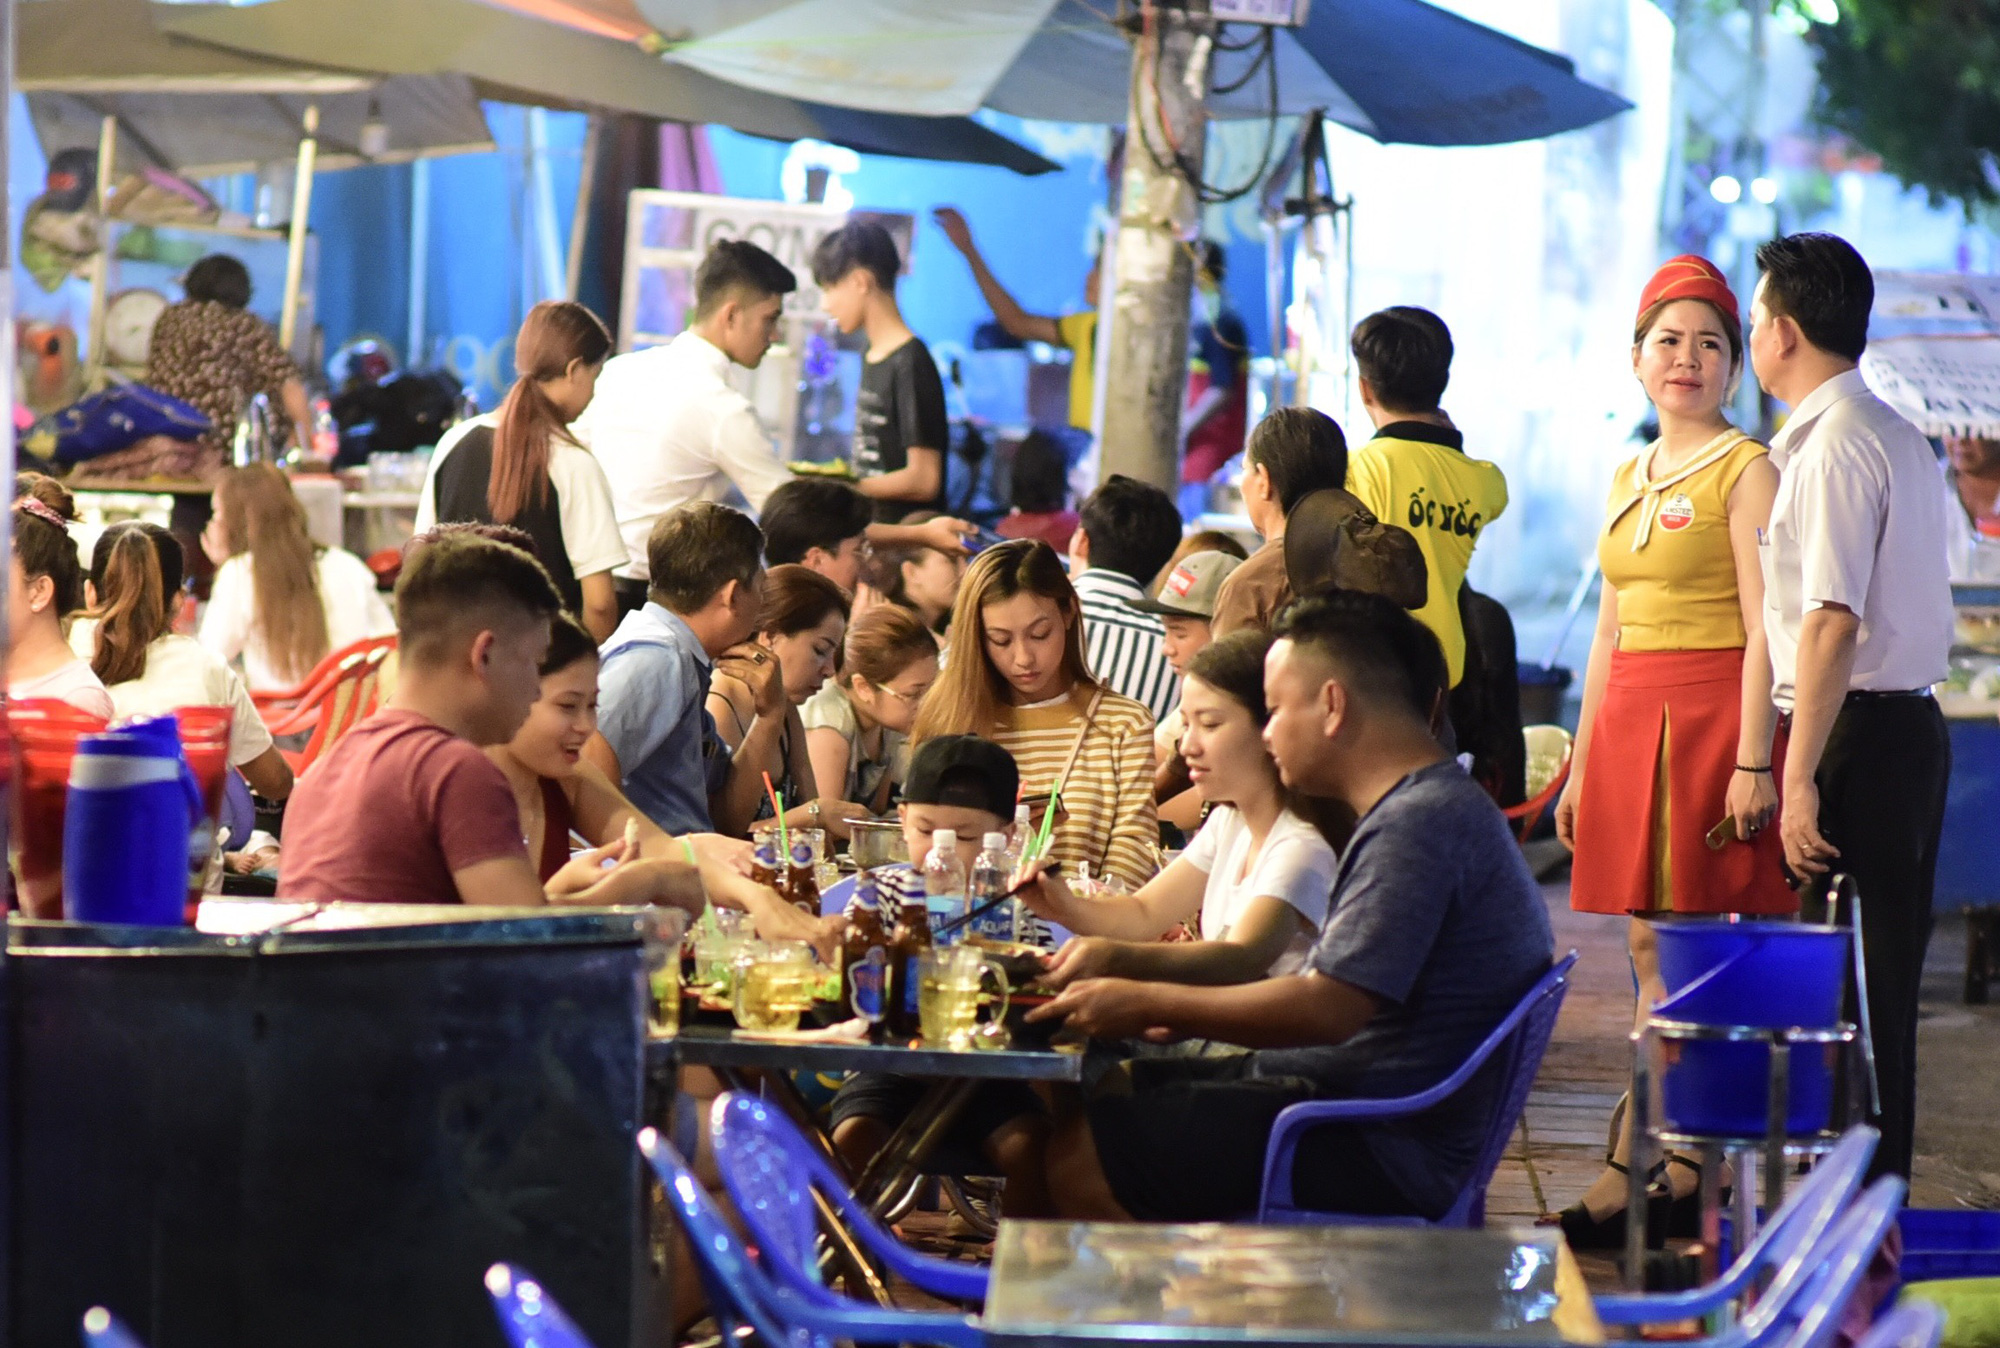 A beer parlor on Nguyen Bieu Street in District 5 is crowded in this photo captured in 2019, before Vietnam's new law on drunk driving took effect. Photo: Quang Dinh / Tuoi Tre